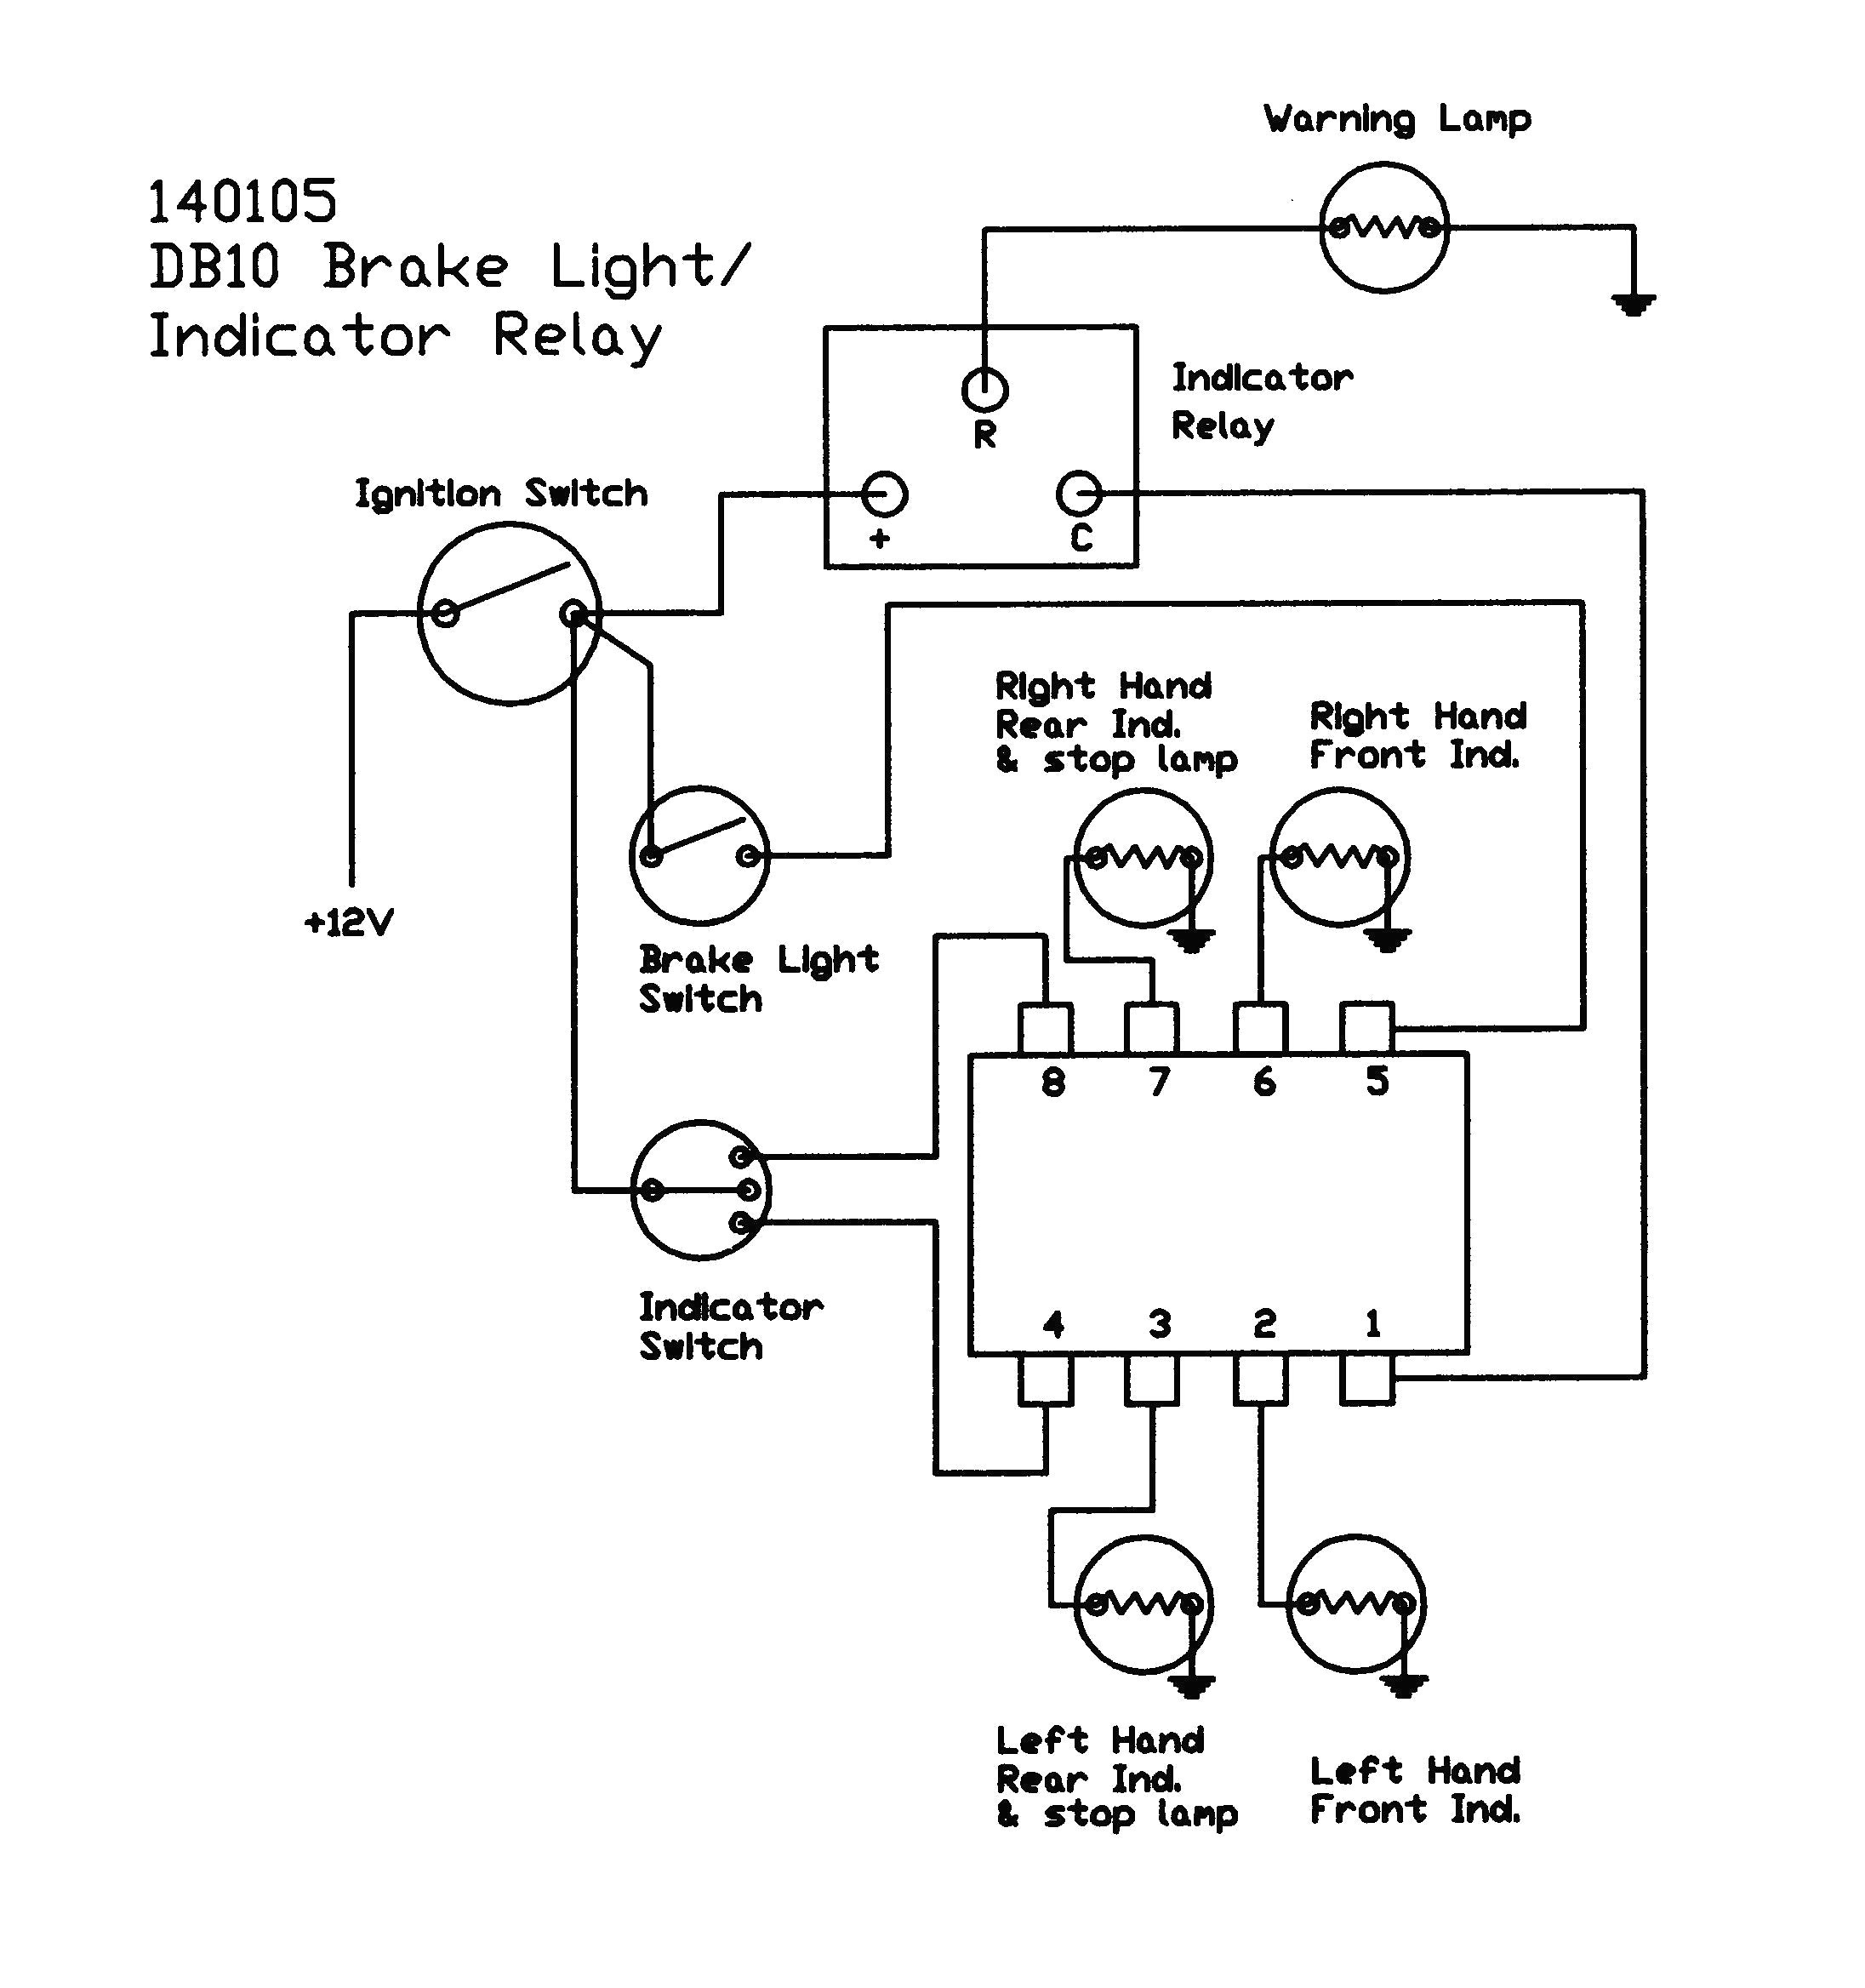 Chevy Hei Wiring | Wiring Library - Sbc Starter Wiring Diagram